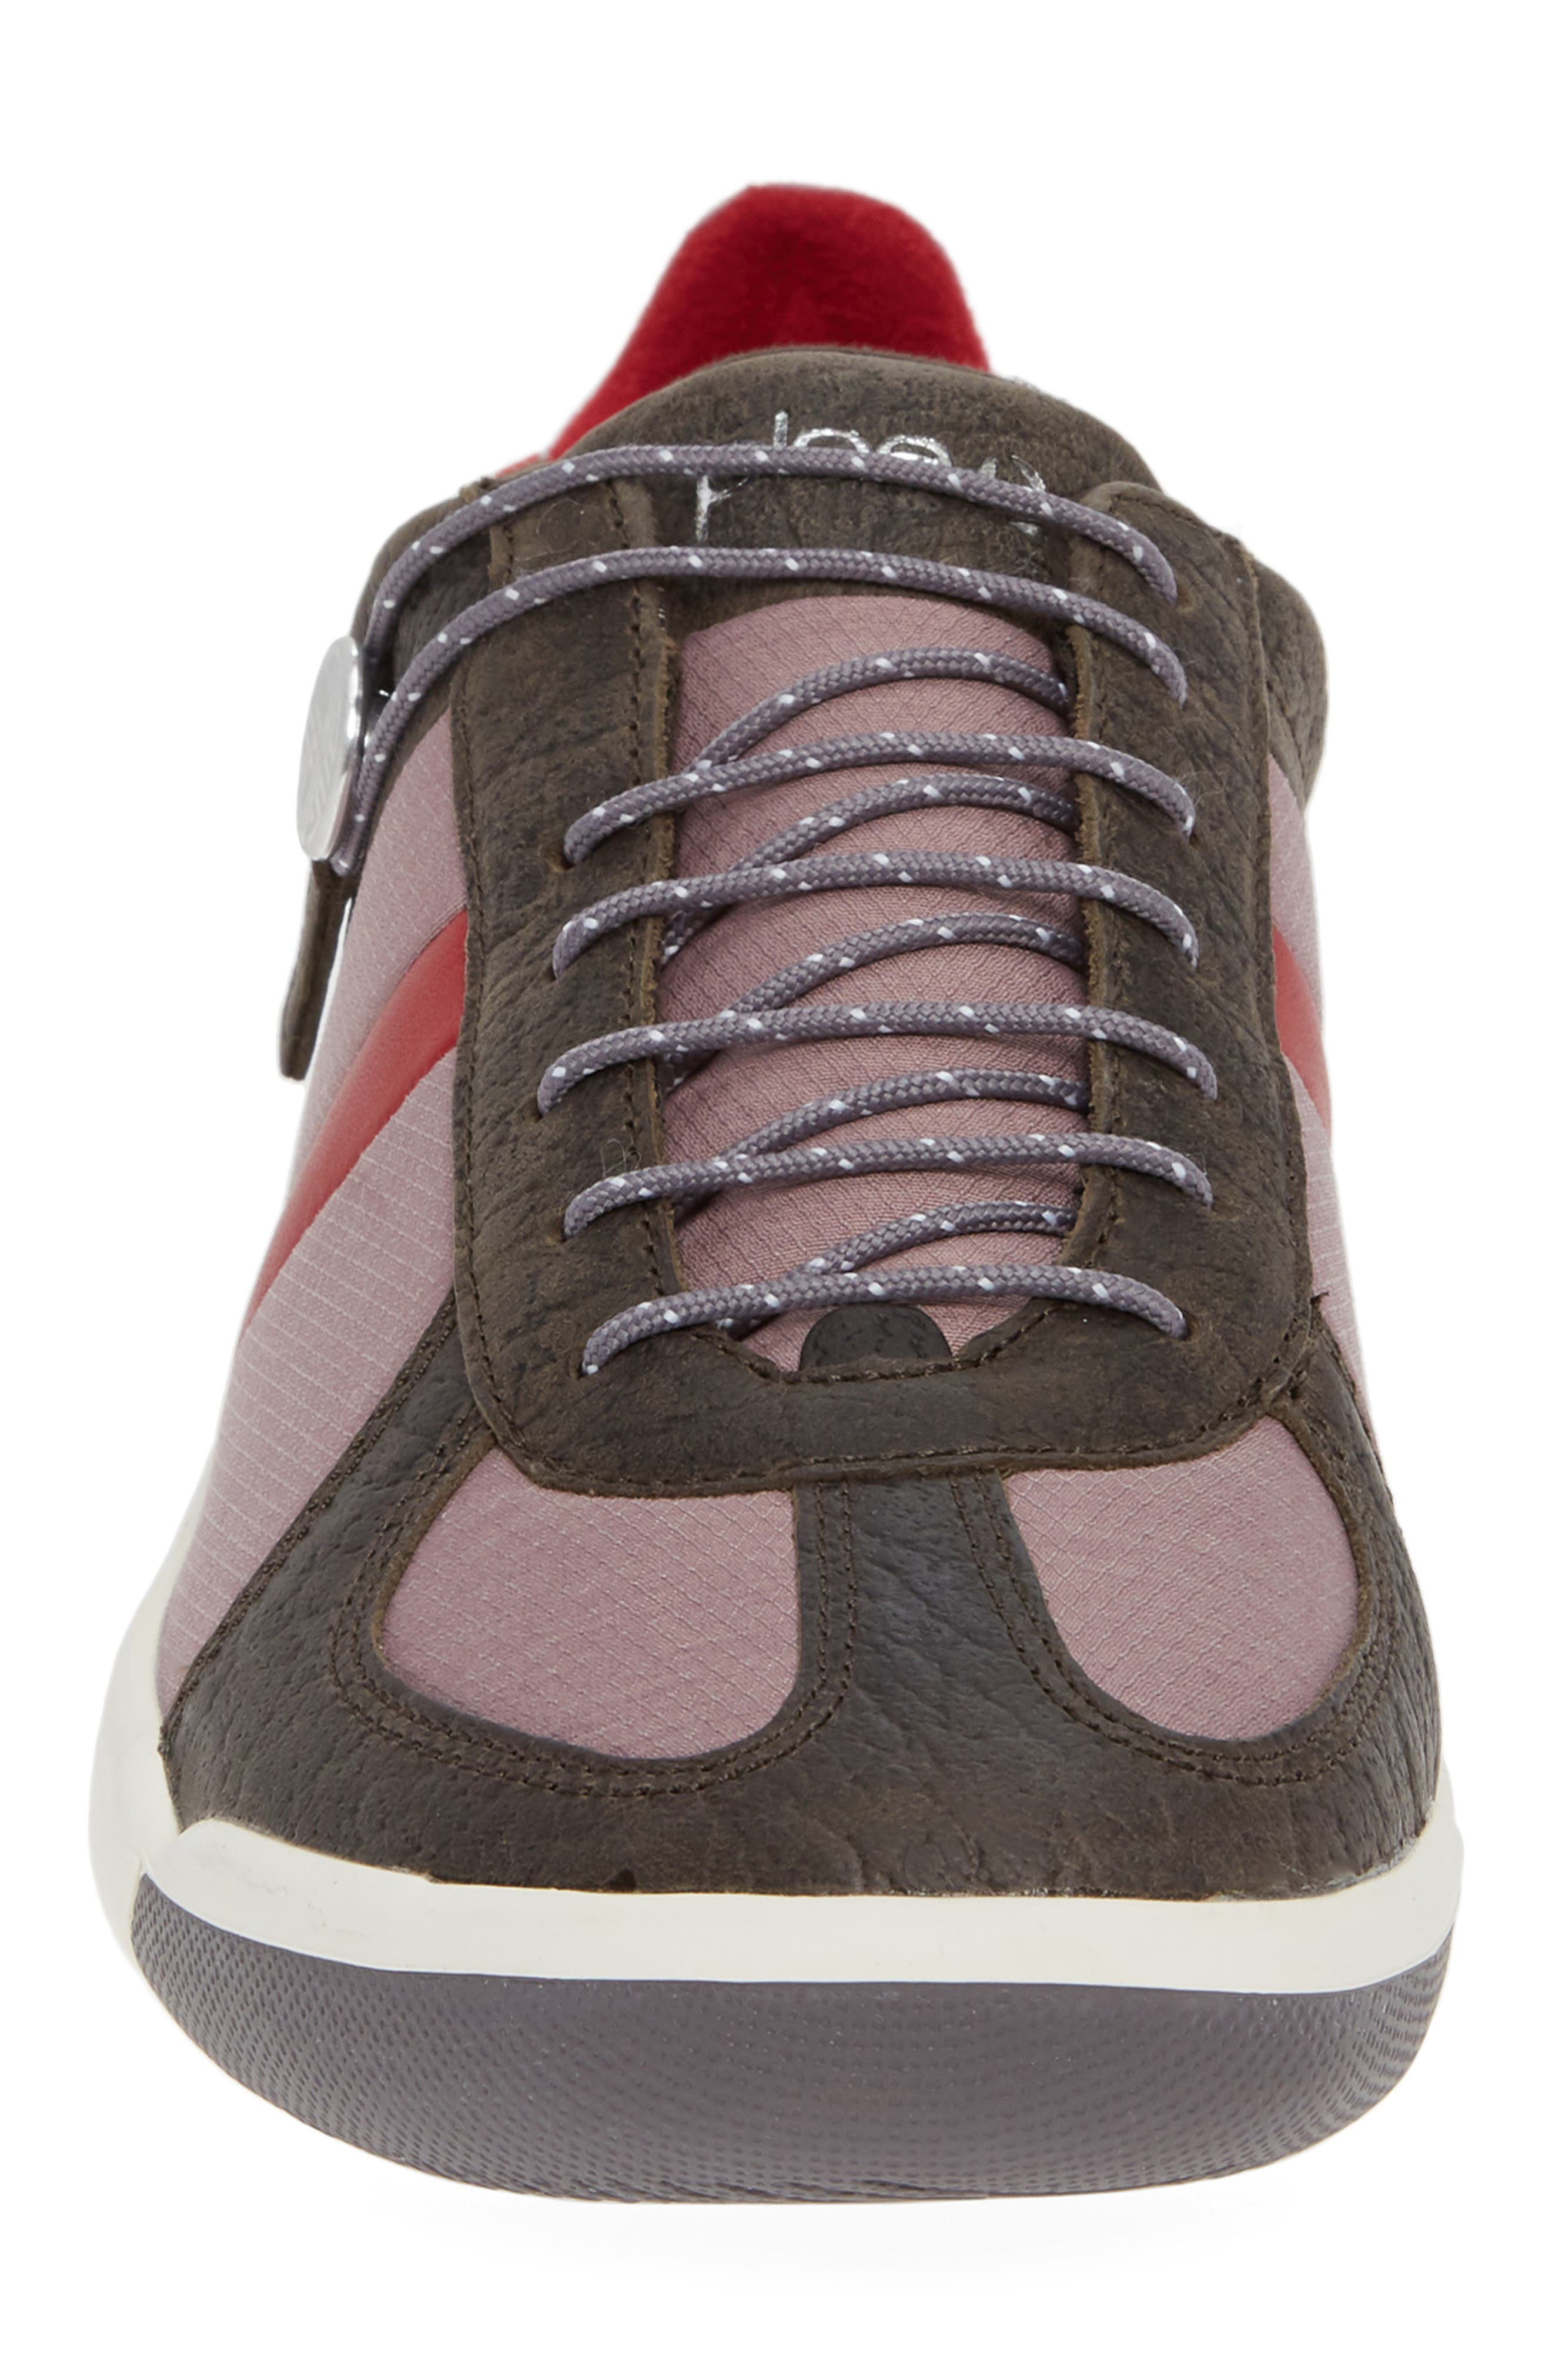 Butler Low-Top Sneaker,                             Alternate thumbnail 4, color,                             EMBER BROWN LEATHER